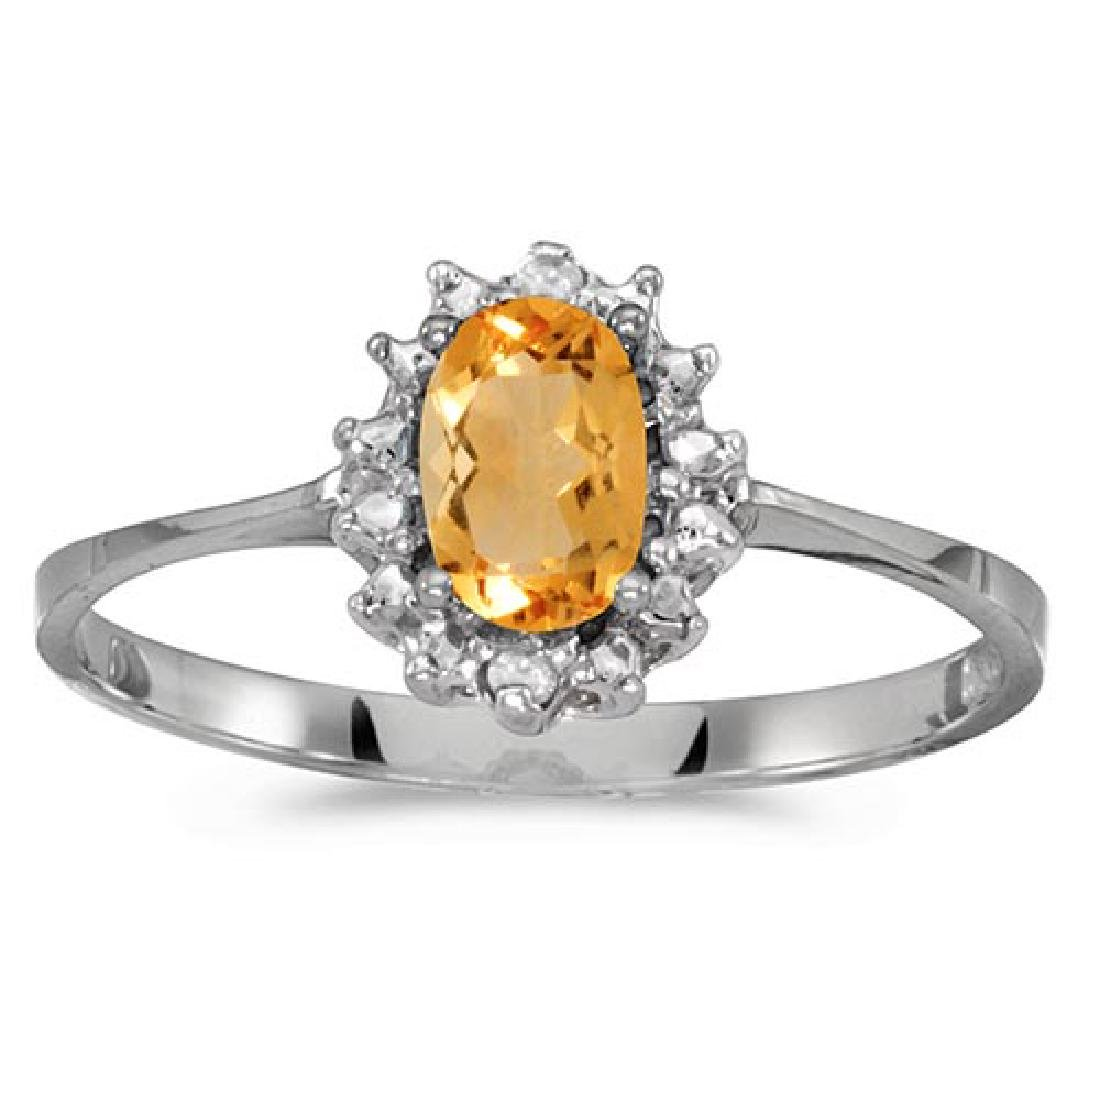 Certified 10k White Gold Oval Citrine And Diamond Ring